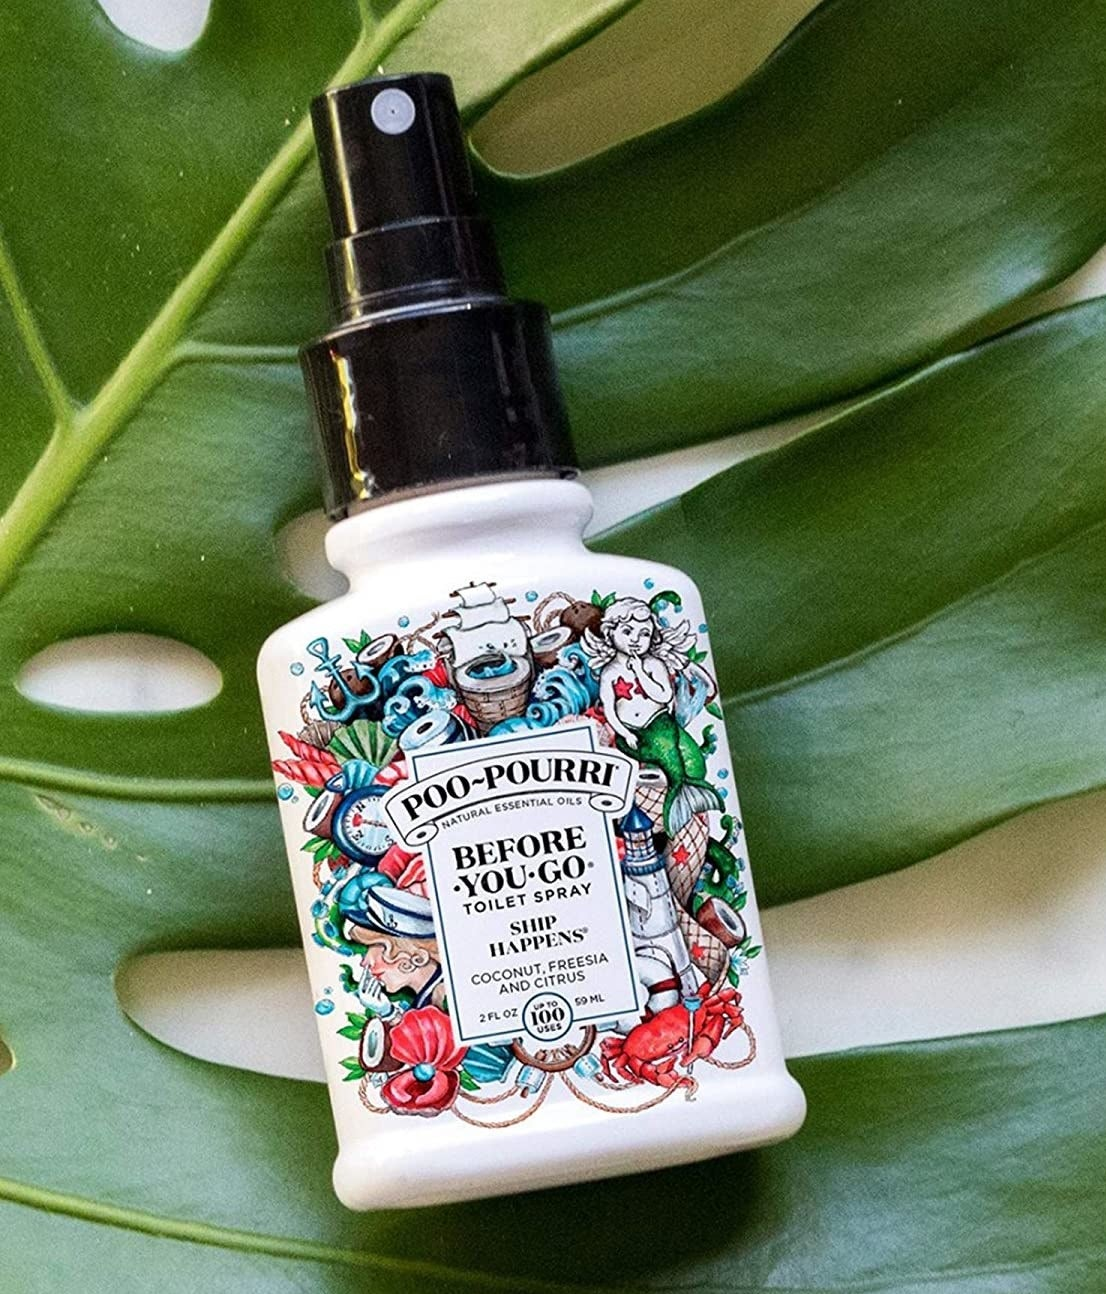 bottle of poo-pourri that says before you go toilet spray ship happens coconut freesia and citrus